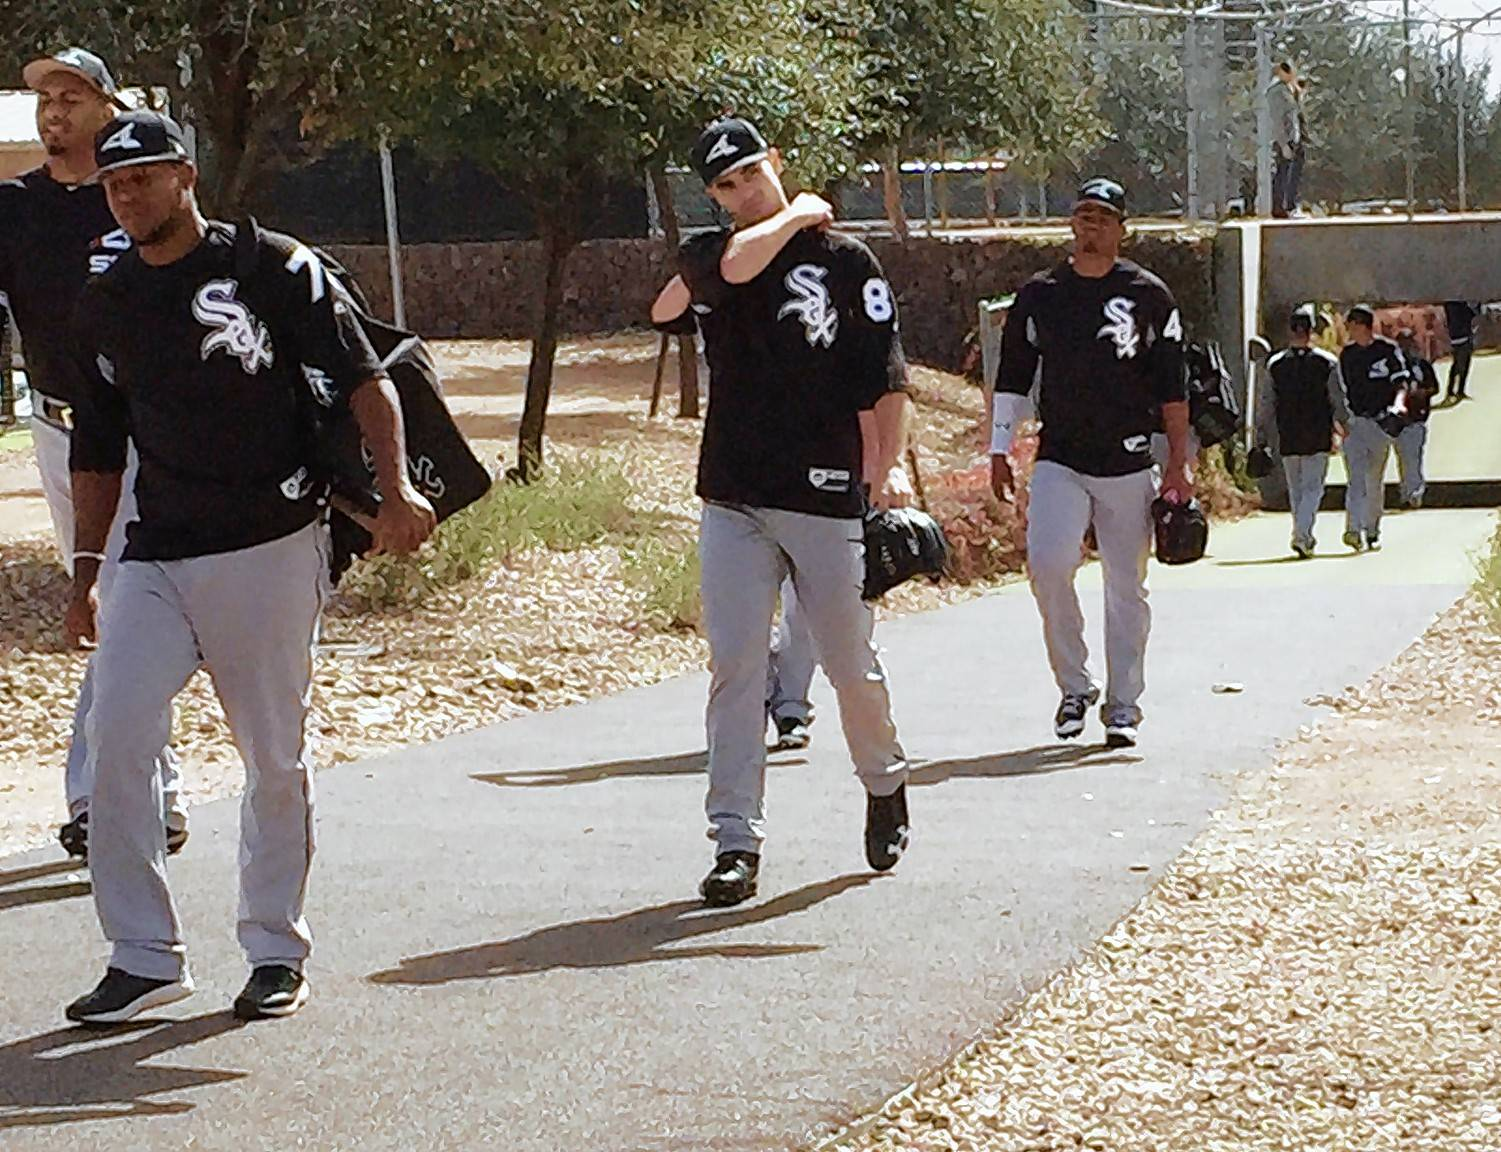 Chicago White Sox players reported to camp for the first full squad working of spring training at Camelback Ranch in Glendale, Arizona.